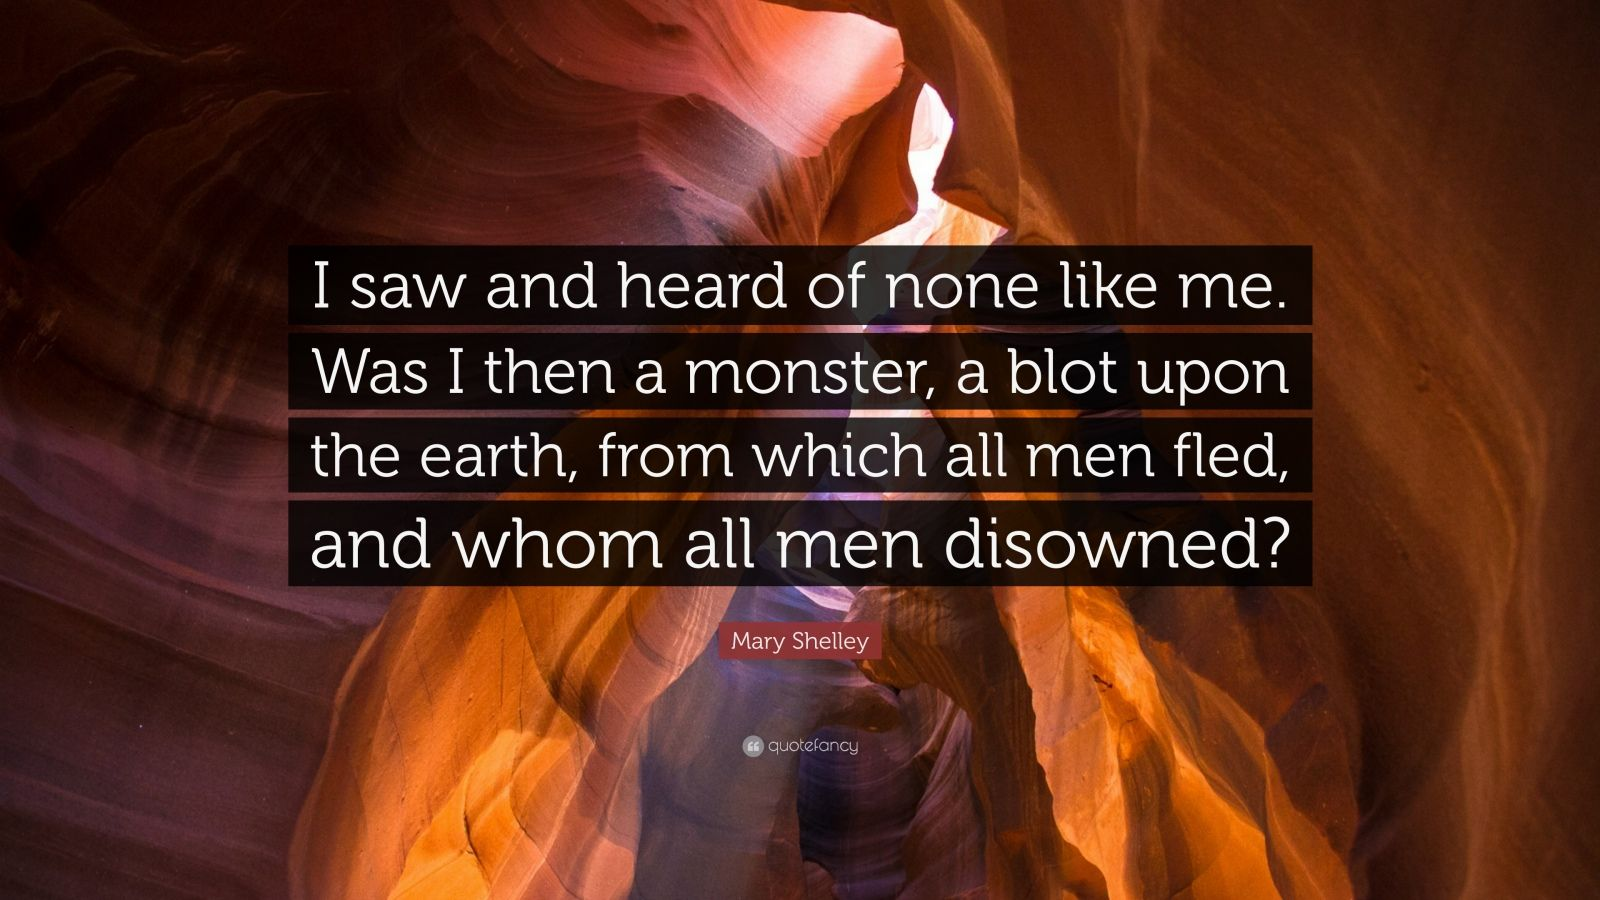 """Mary Shelley Quote: """"I saw and heard of none like me. Was I then a monster, a blot upon the earth, from which all men fled, and whom all men disowned?"""""""